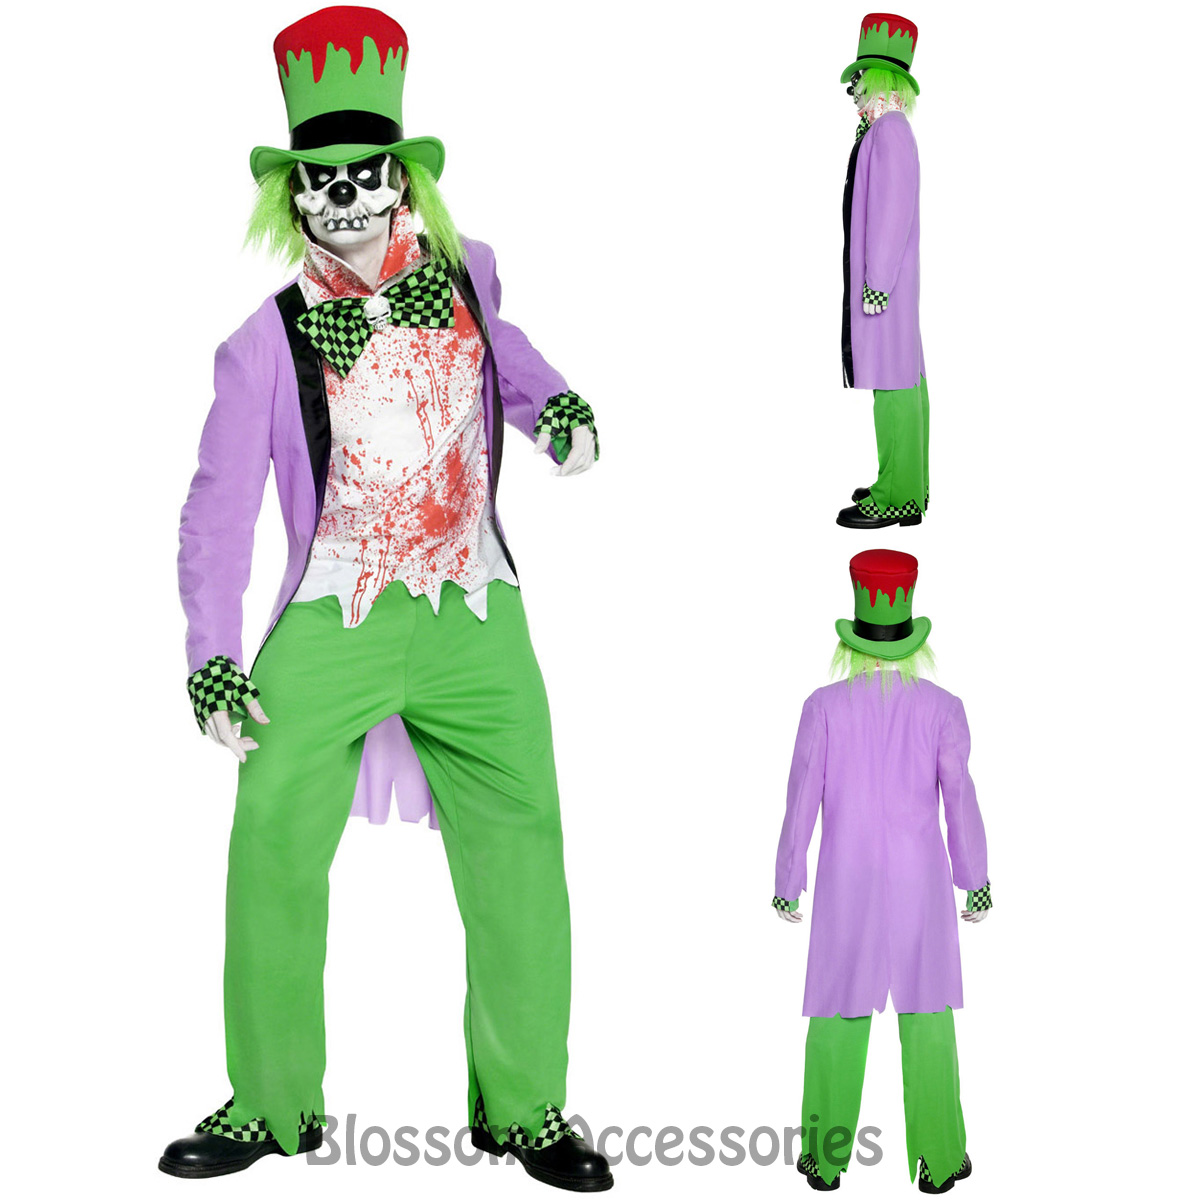 CL905 Mens Bad Hatter Halloween Zombie Evil Costume Twisted Alice In Wonderland - eBay